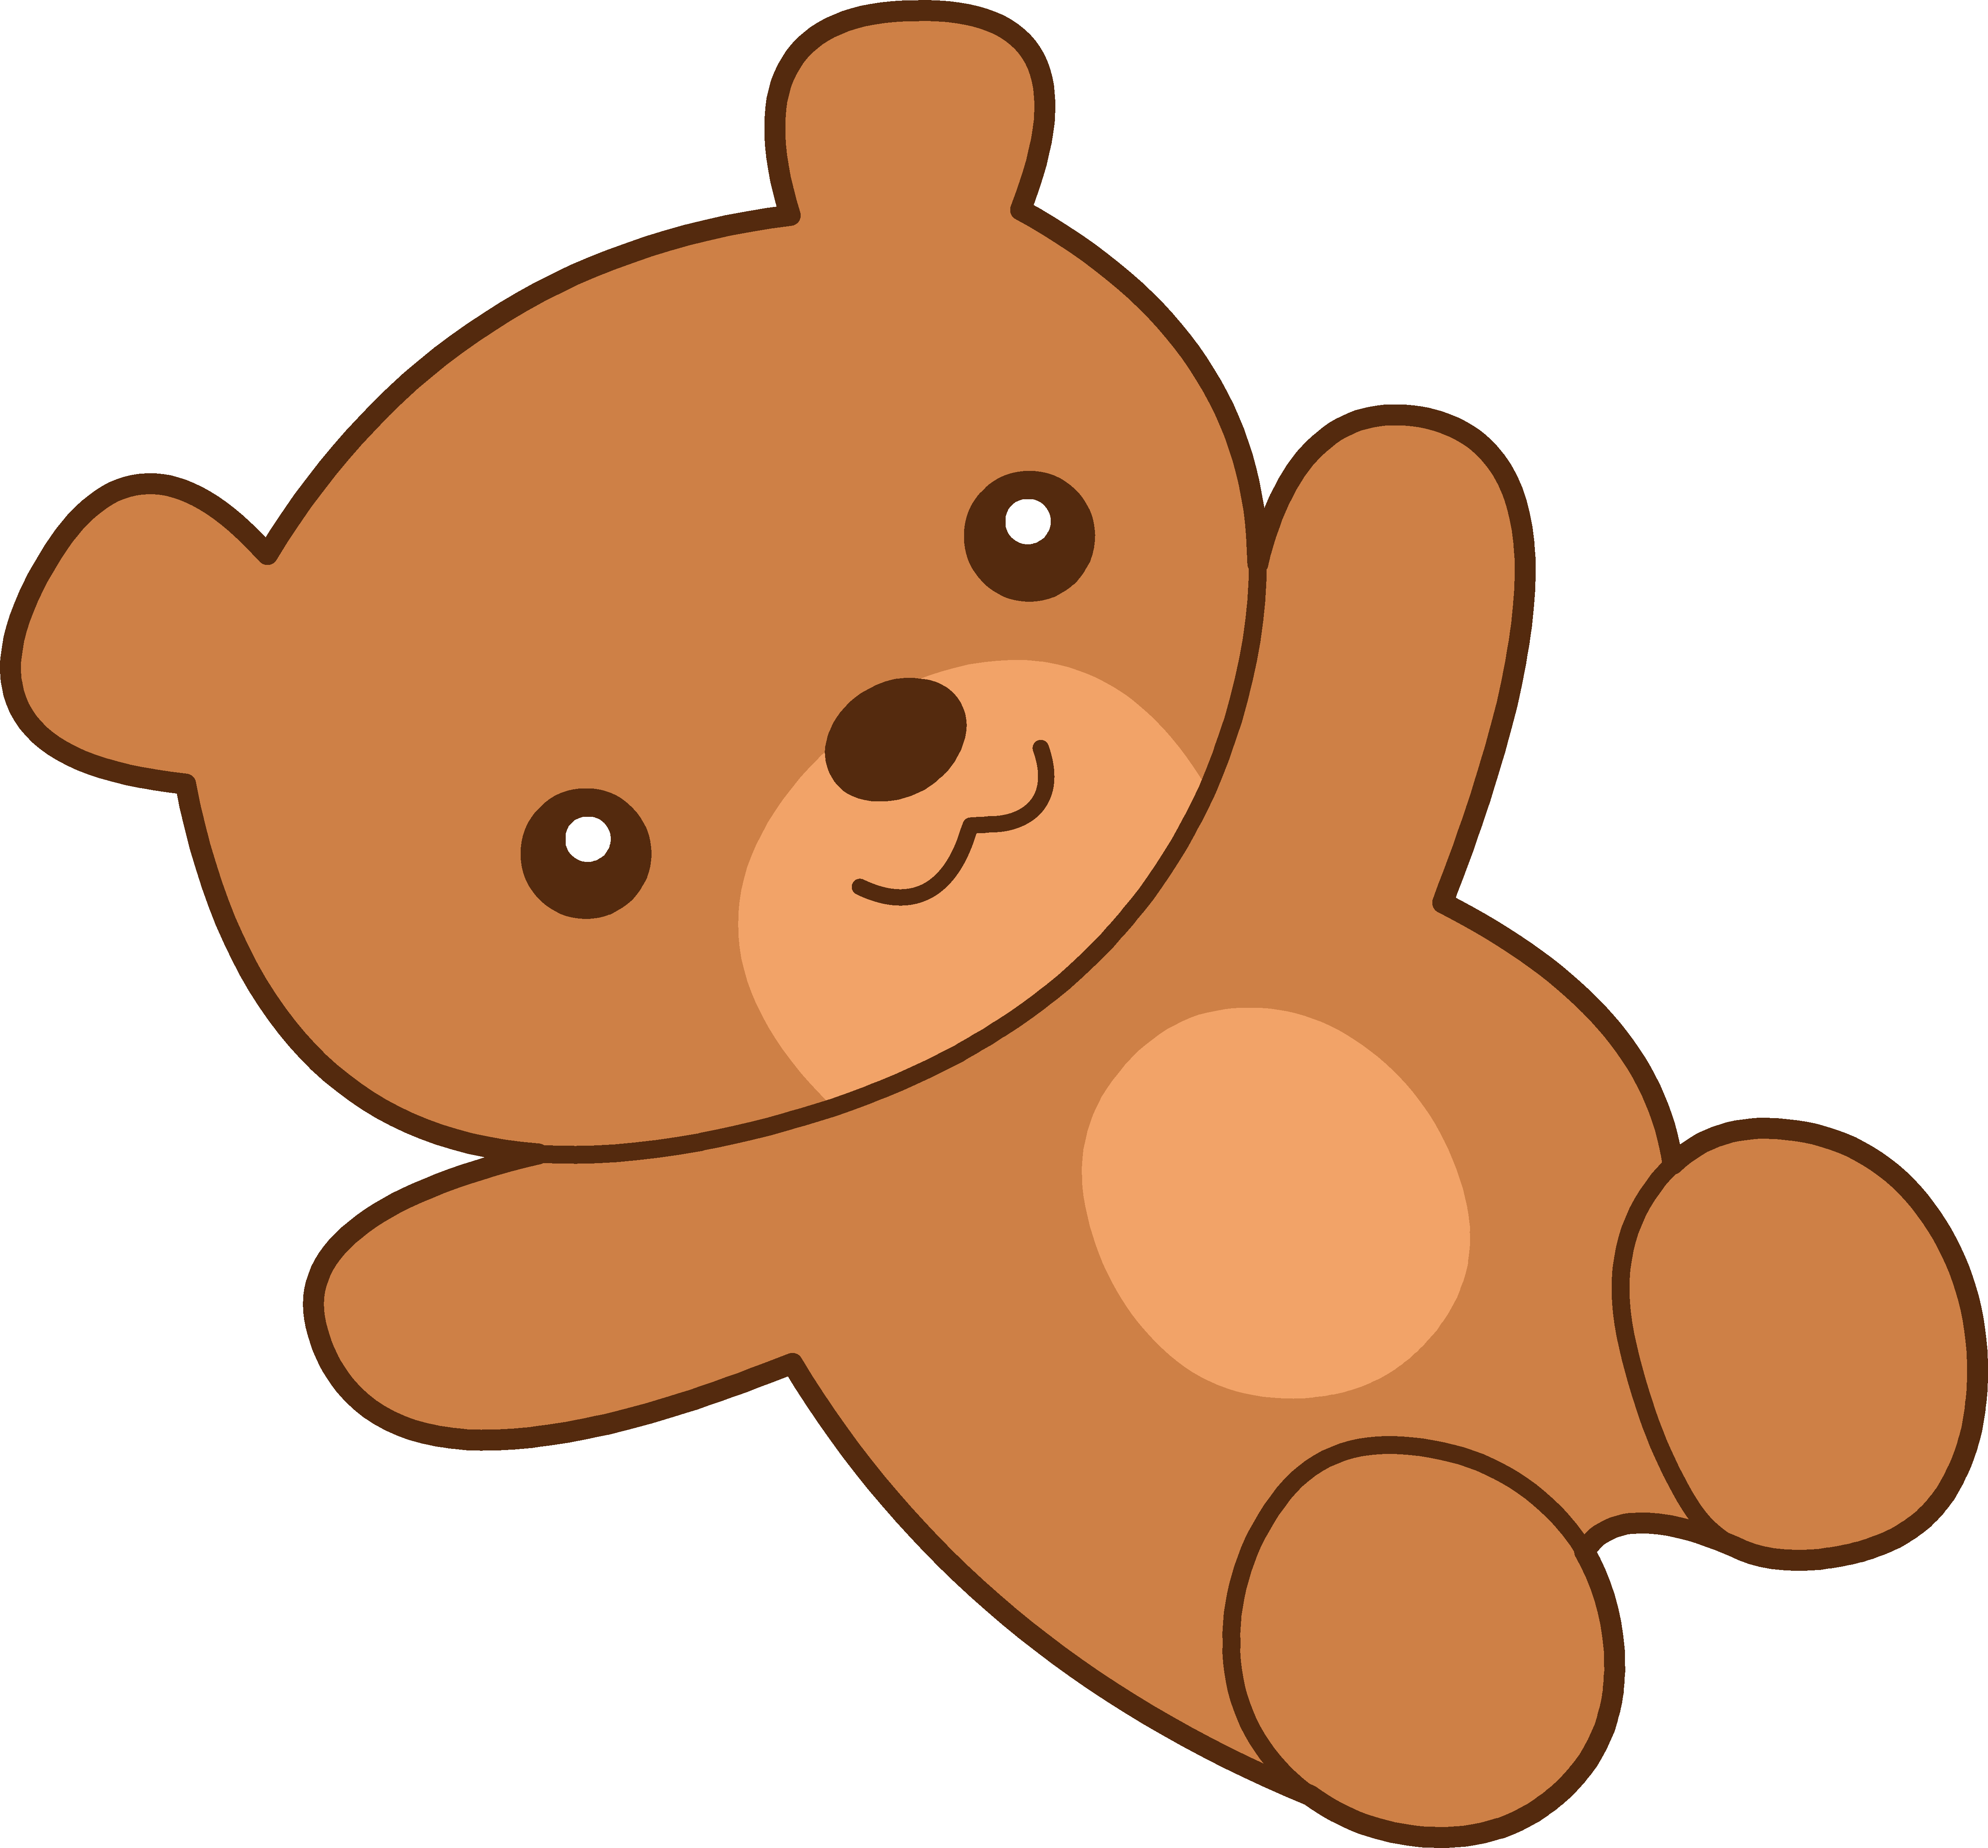 Teddy Bear clipart #18, Download drawings